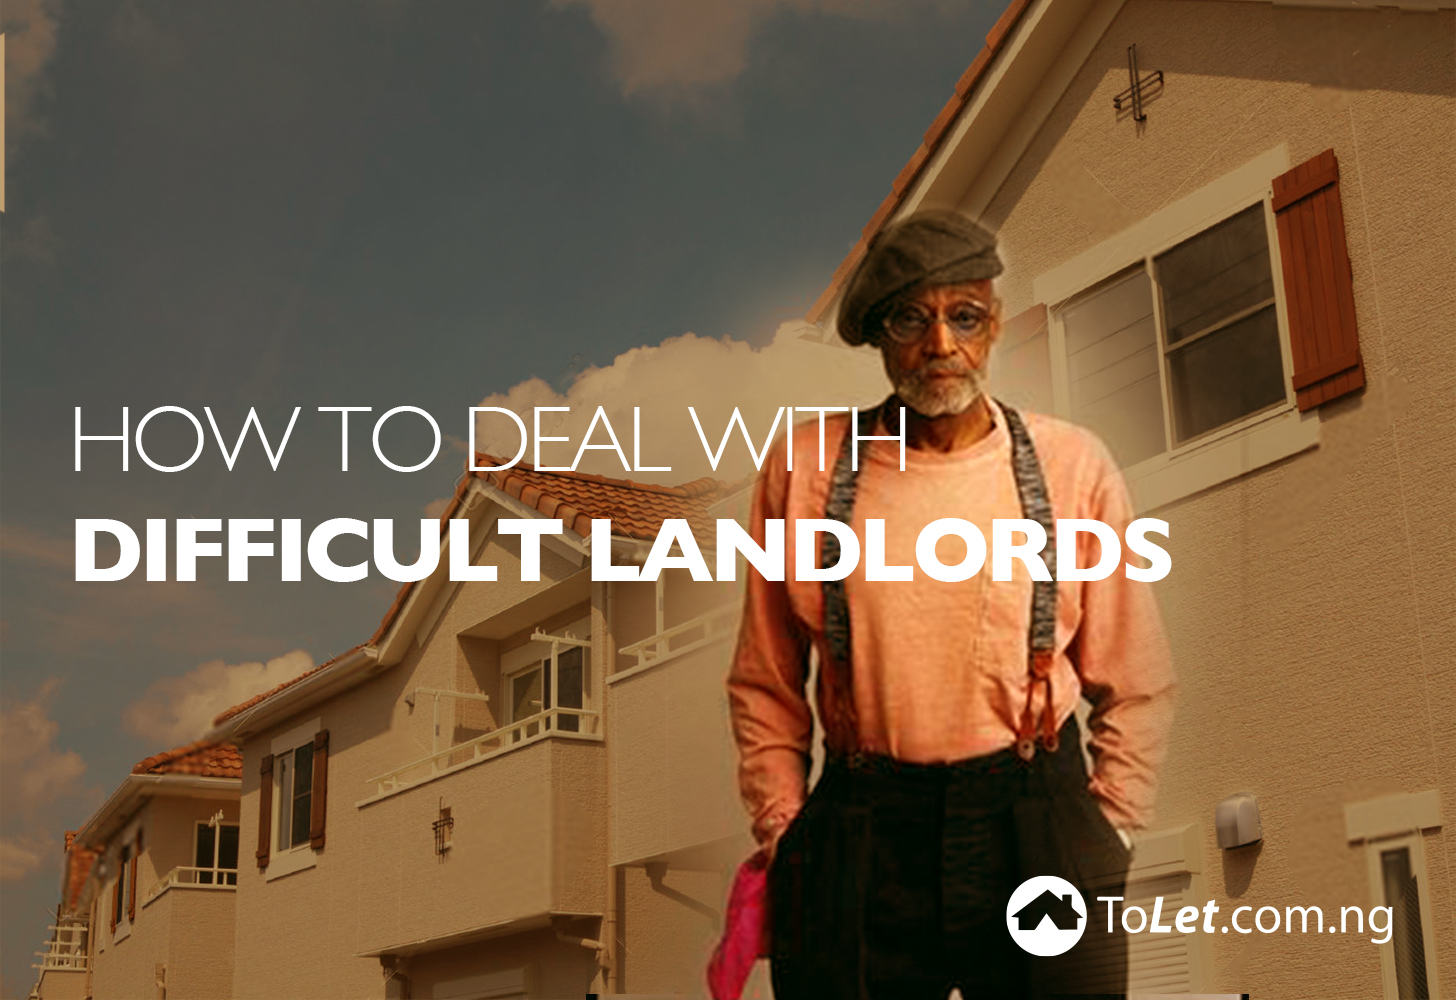 how to deal with difficult landlords